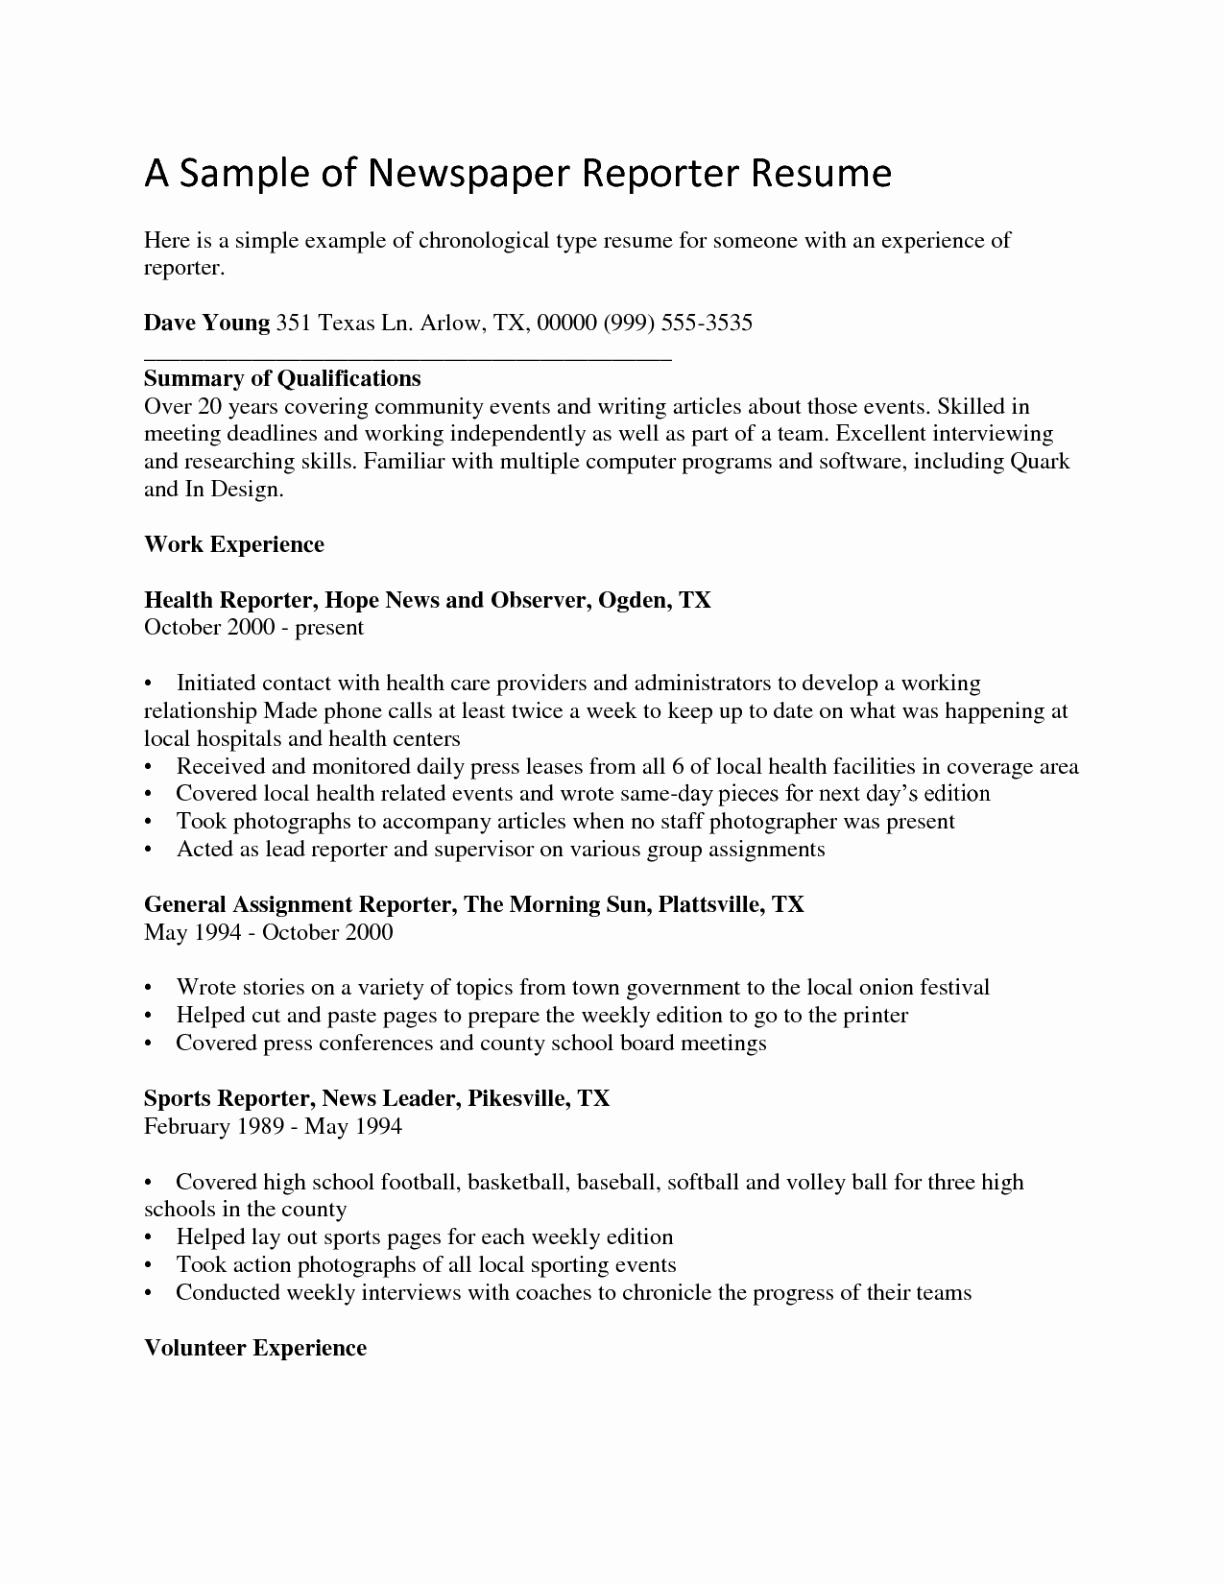 Baseball Resume Template - format Resume for Experienced Person Elegant Journalist Resume